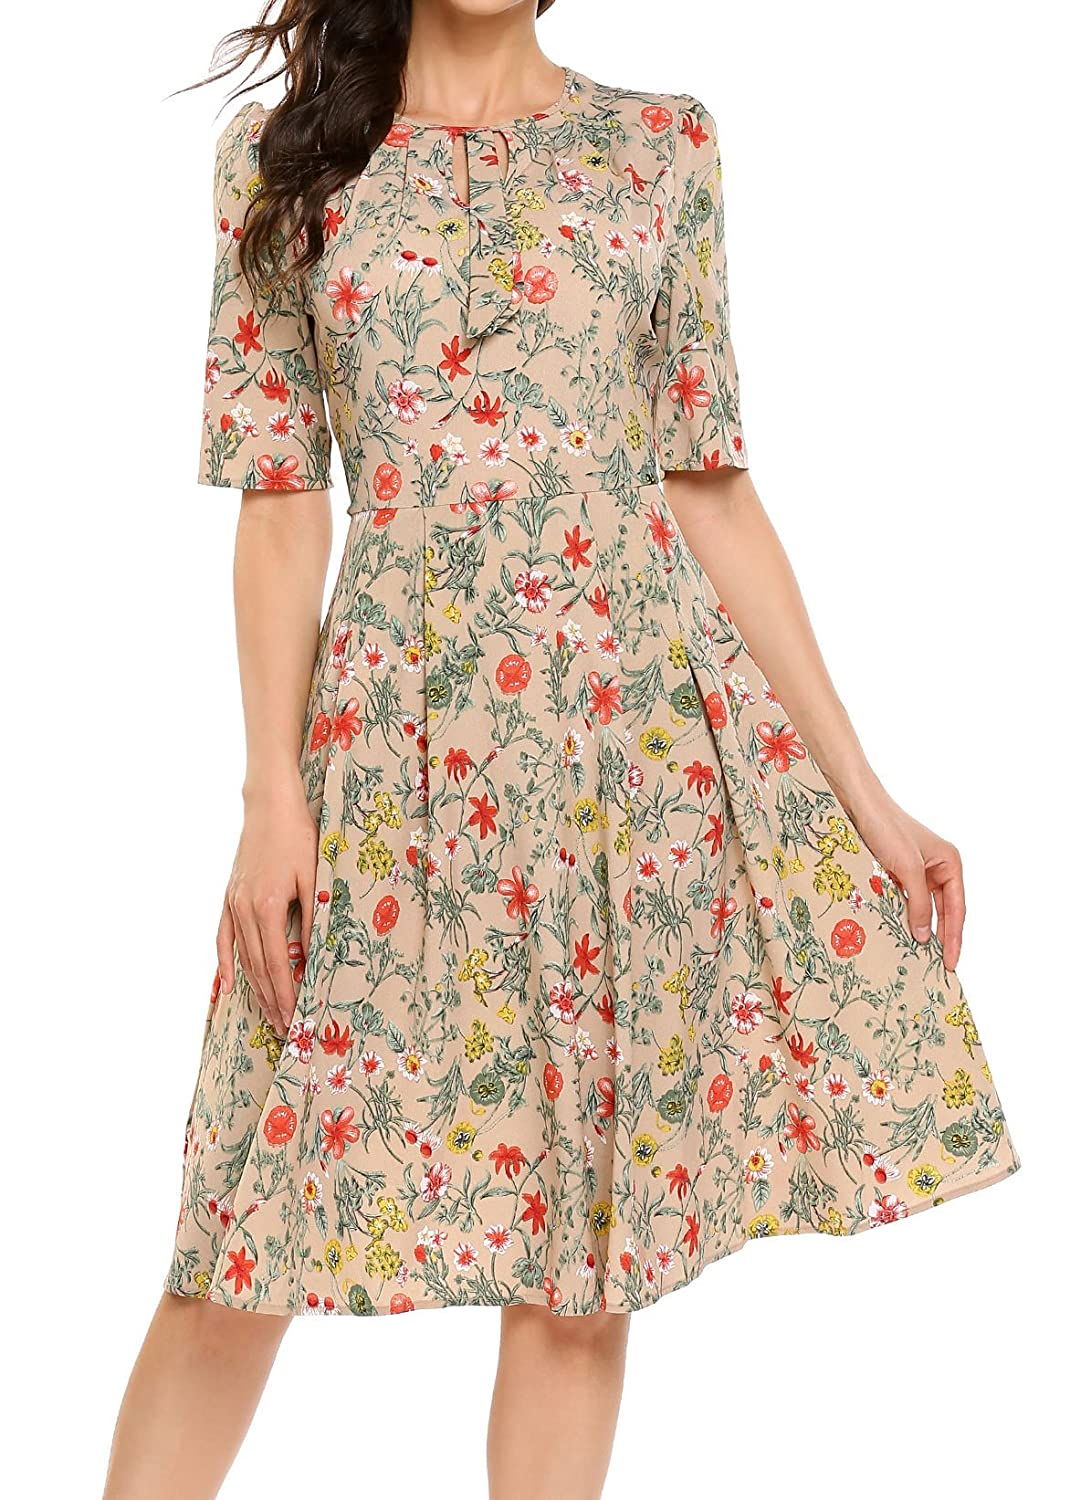 1940s Fashion Advice for Short Women Casual Short Sleeve Floral Printed Fit and Flare Party Dress ACEVOG Womens $30.79 AT vintagedancer.com